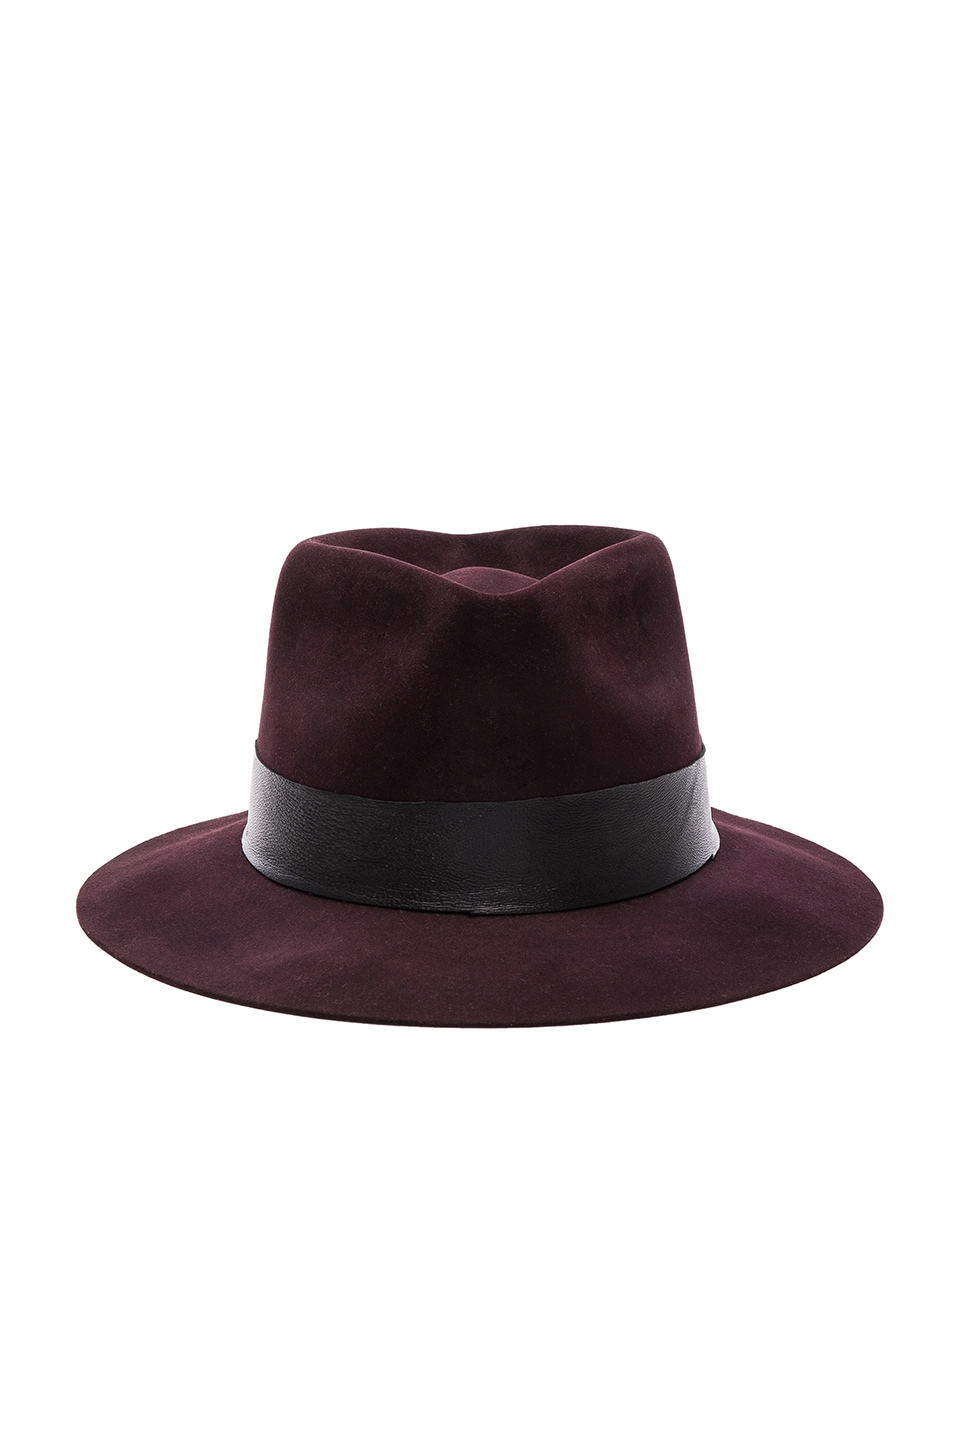 Image 1 of Nick Fouquet for FWRD Meritime Fedora in Black Cherry